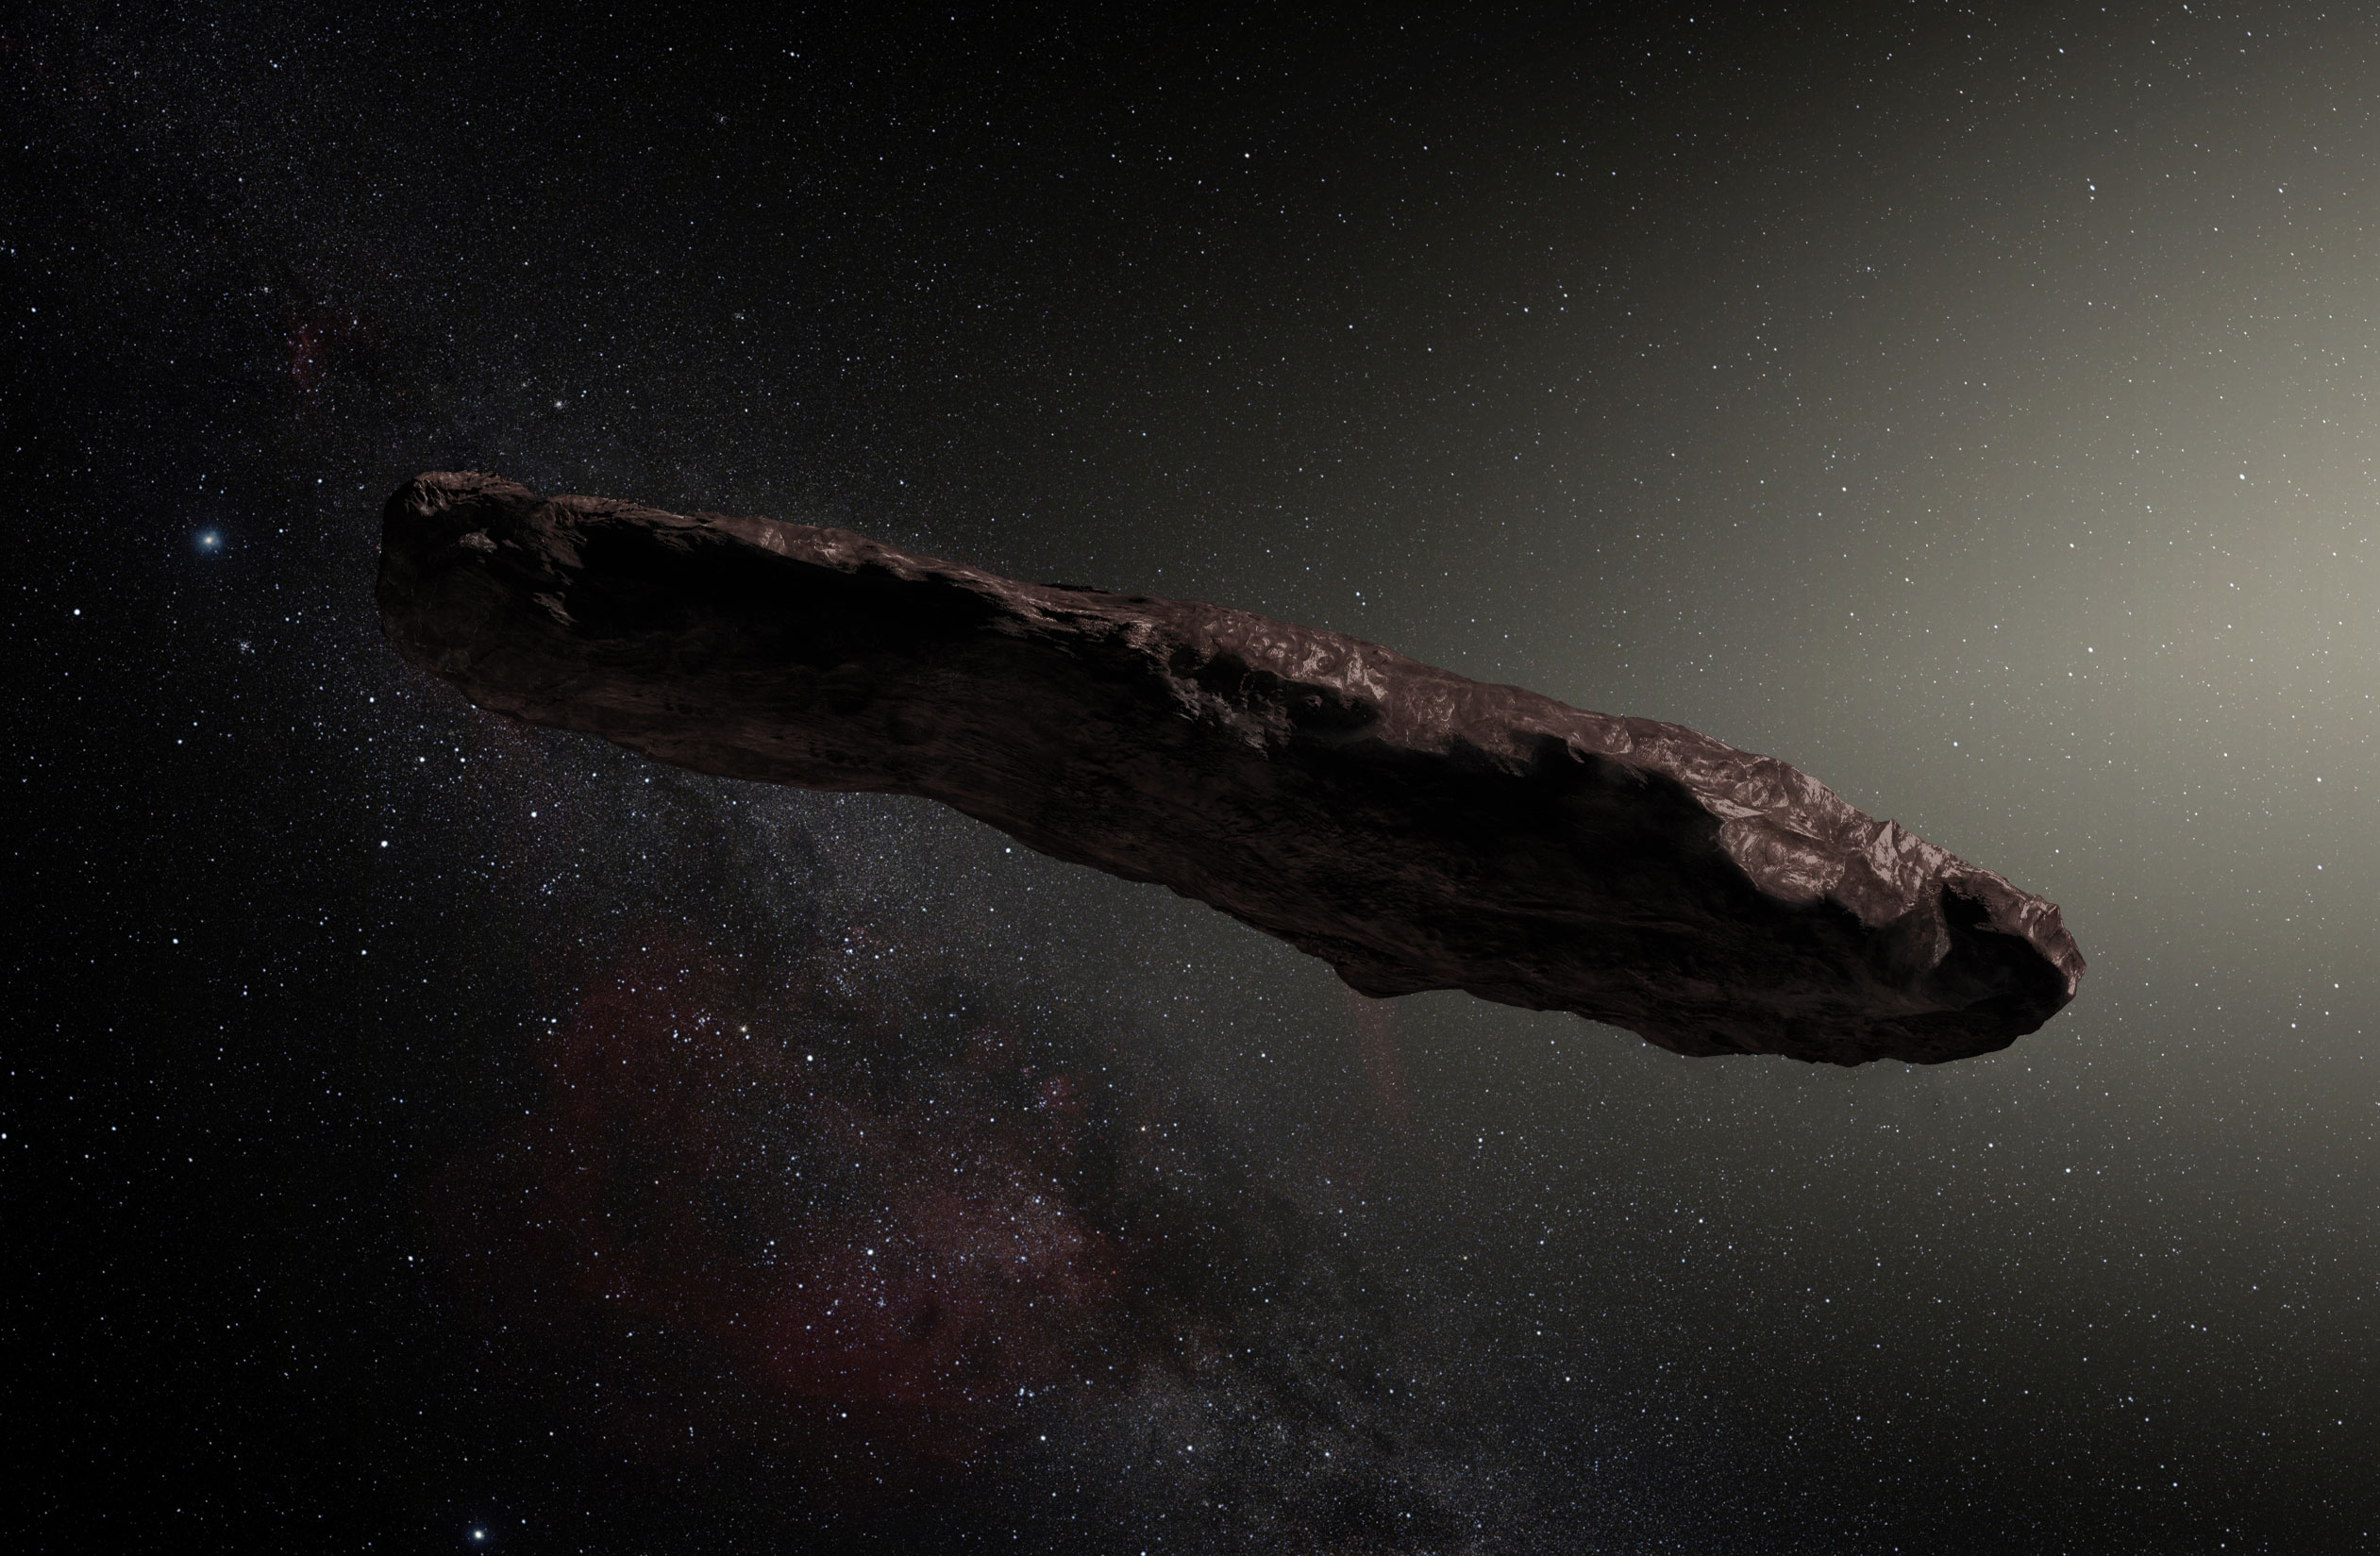 File:Artist's impression of ʻOumuamua.jpg - Wikimedia Commons